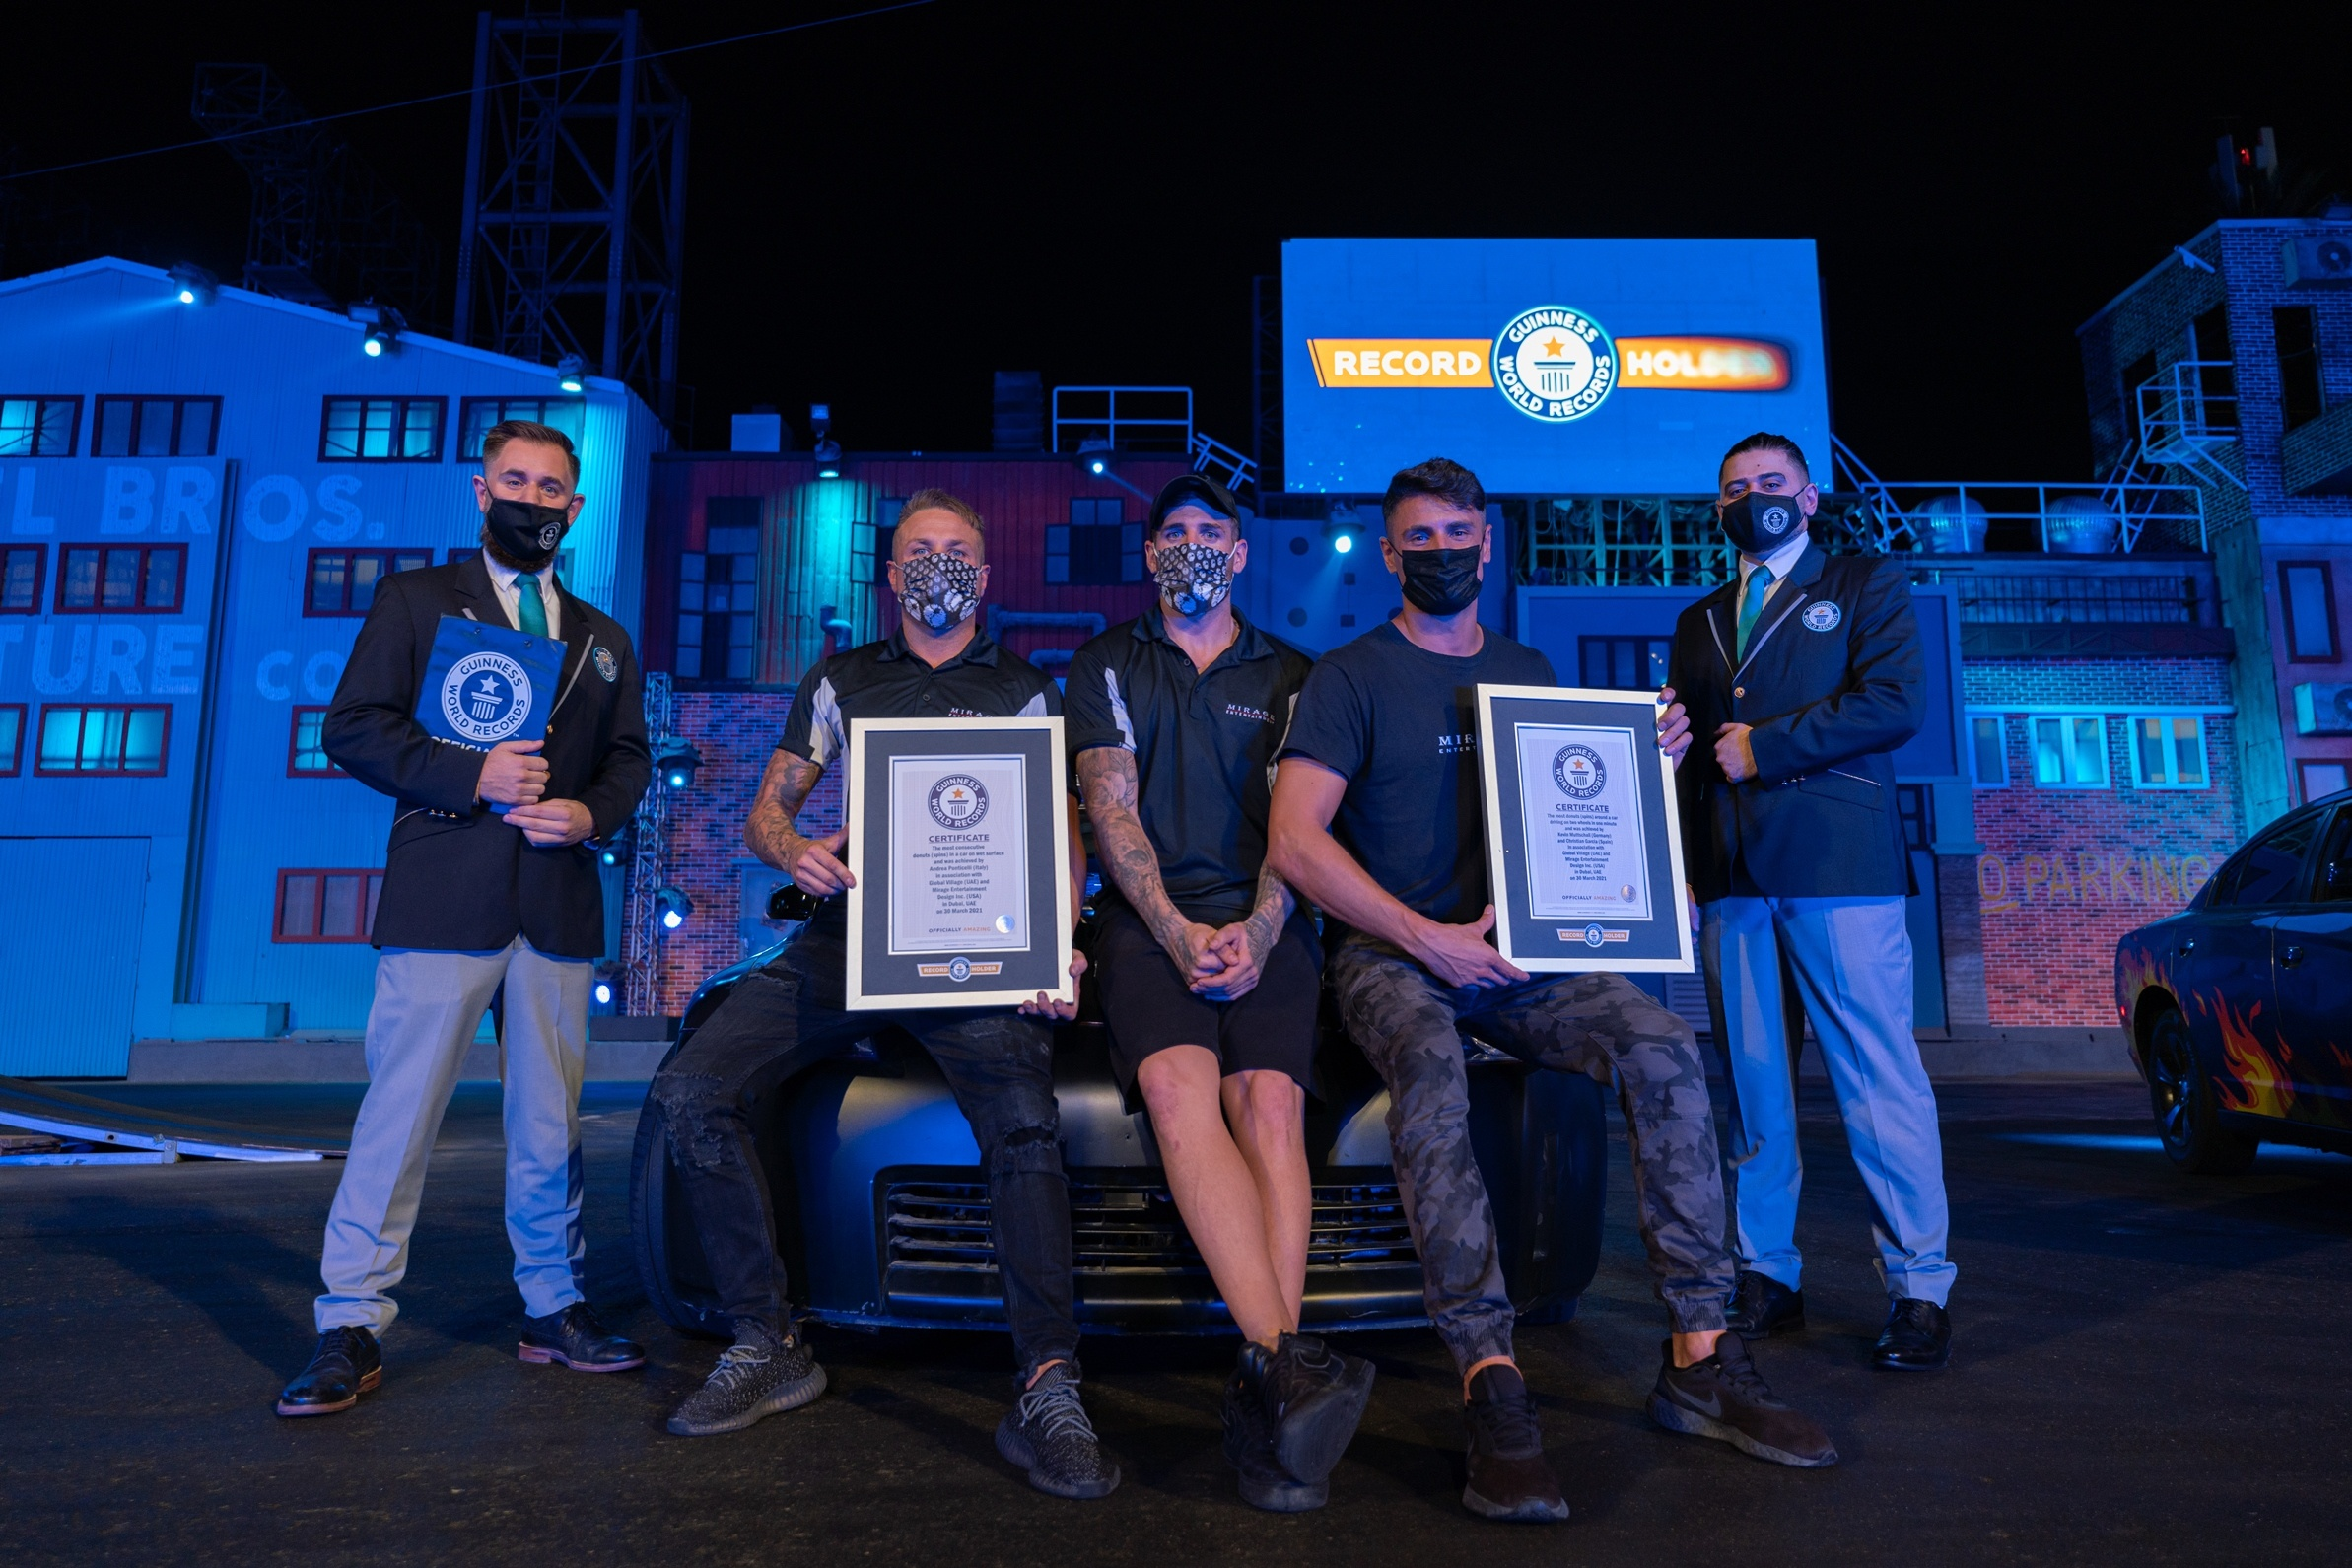 Global Village stunt team thrills guests and claims two new Guinness World Records™ titles